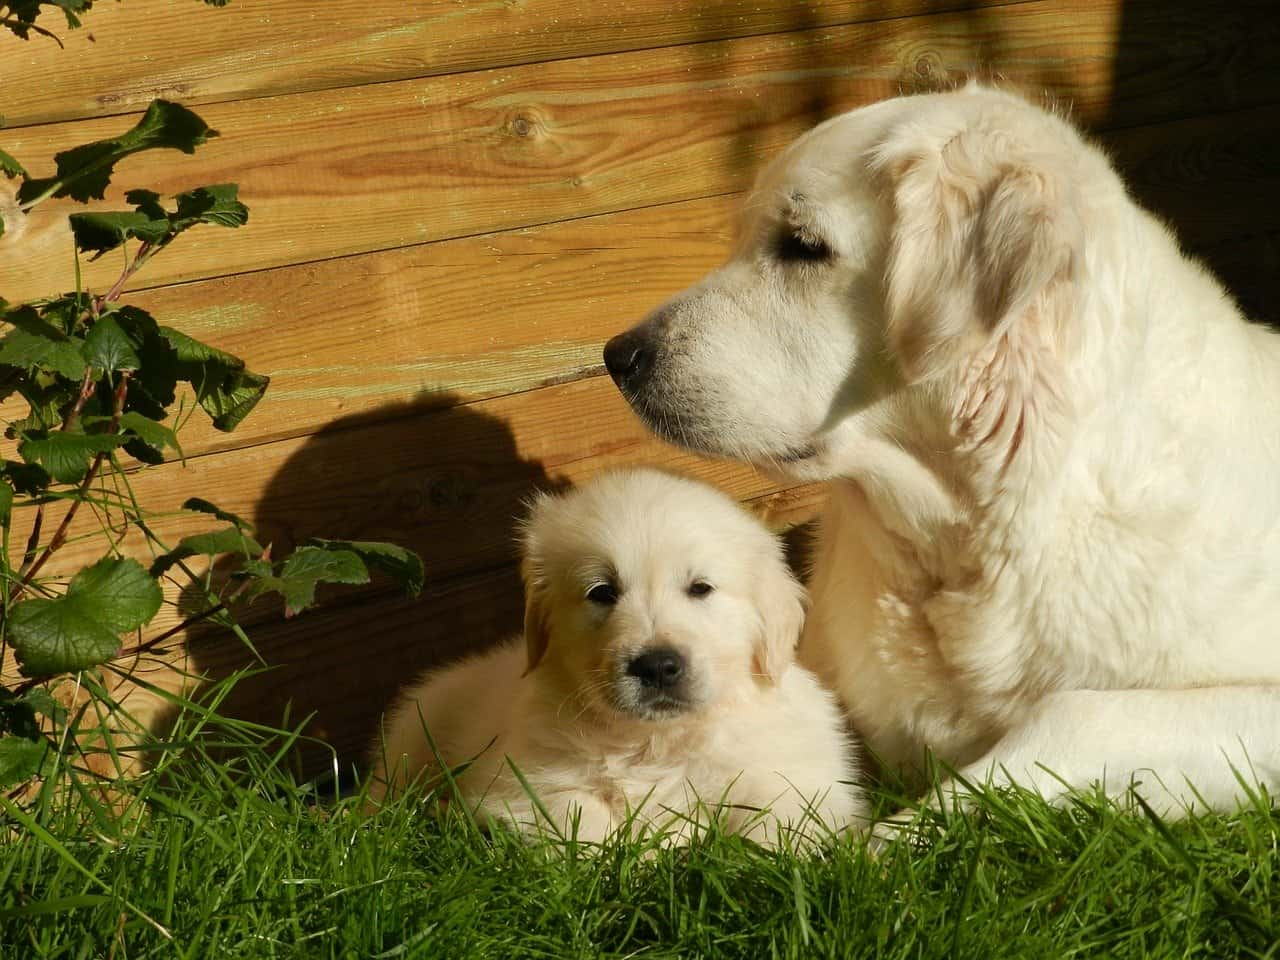 Golden retriever mother looking after its puppy